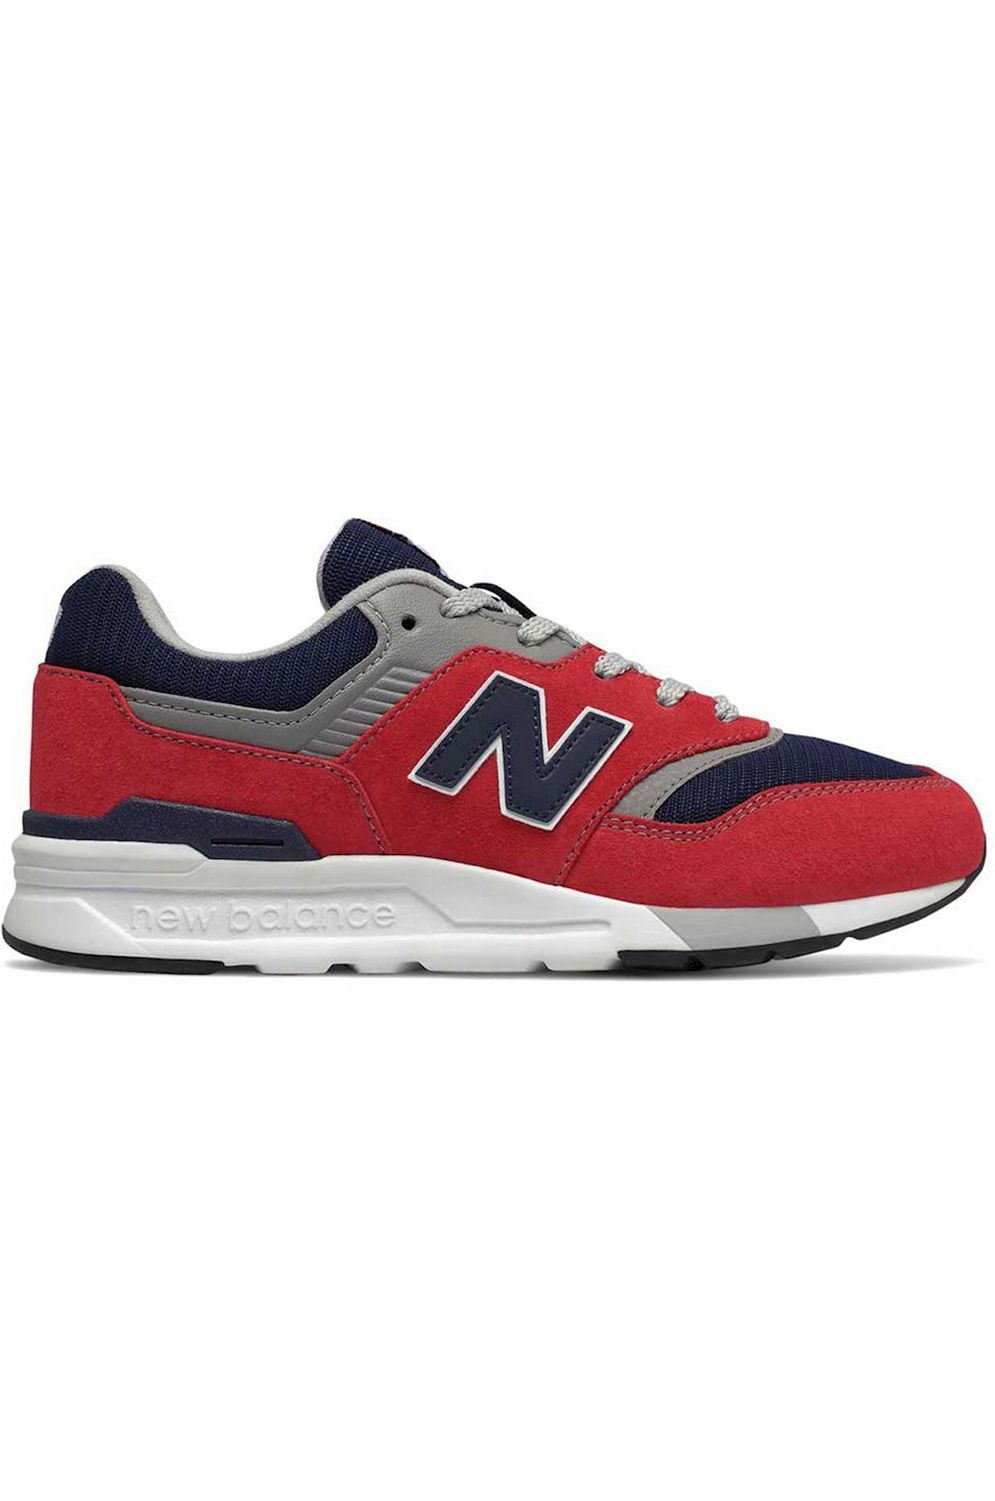 New Balance Shoes 997 CLASSIC KIDS Red